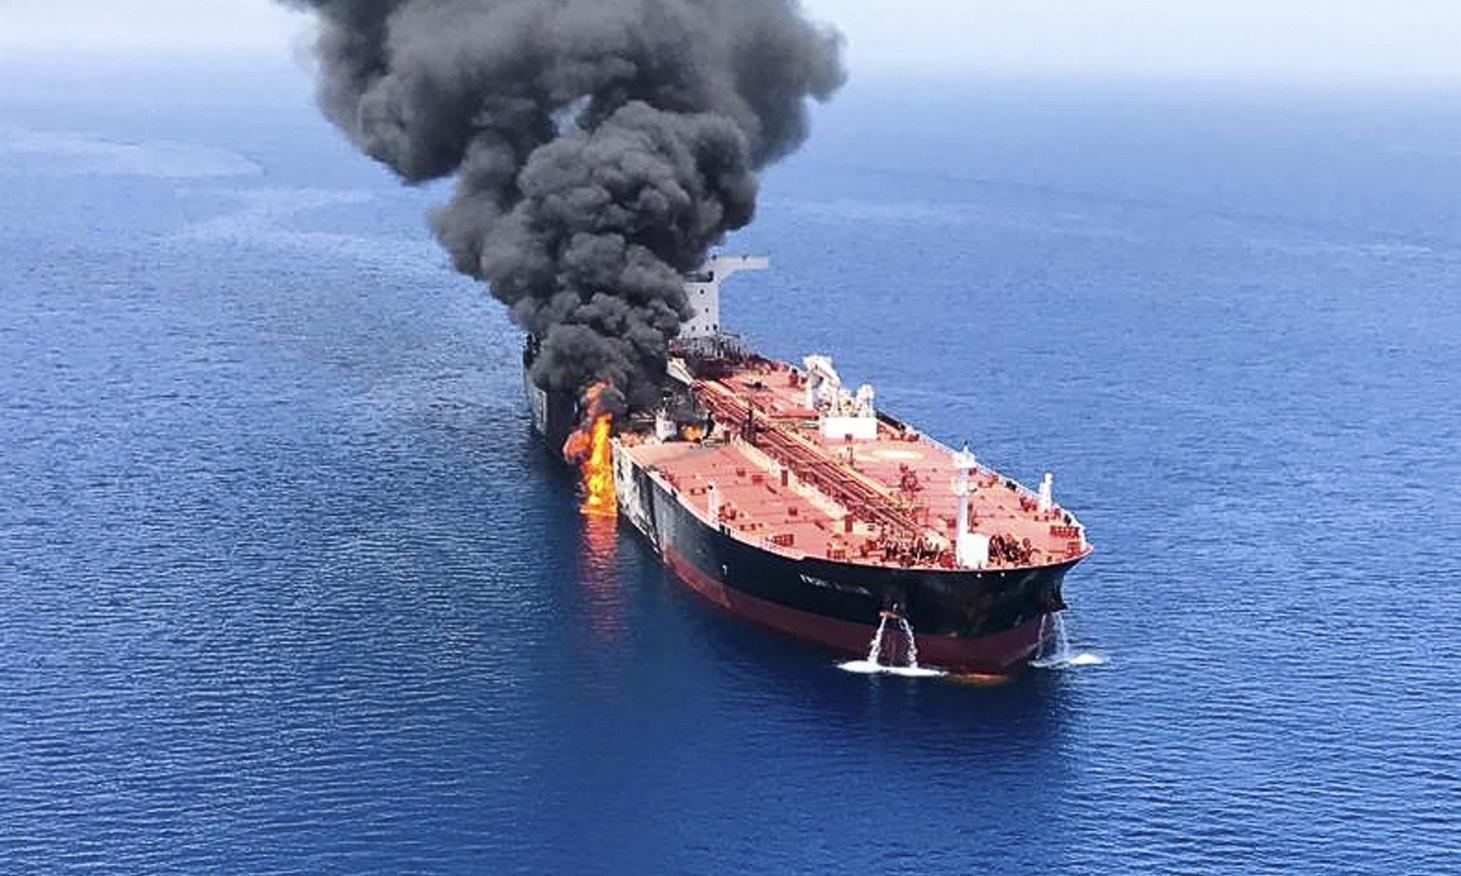 What impact could oil tanker attacks have on global economy?